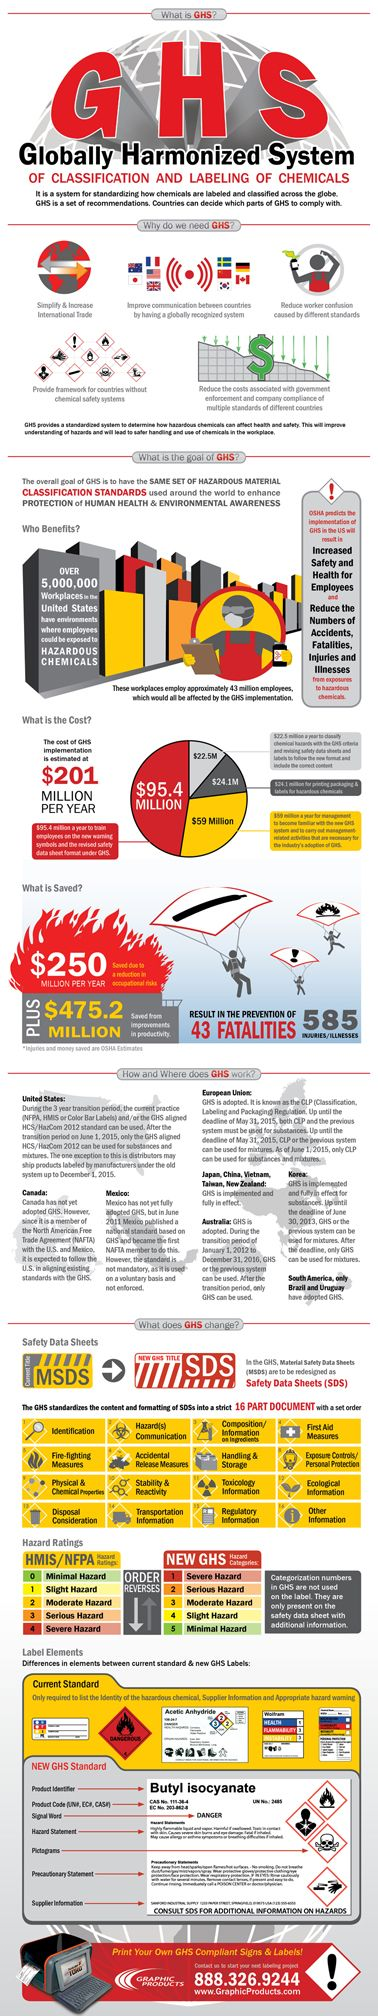 Globally Harmonized System (GHS) Infographic